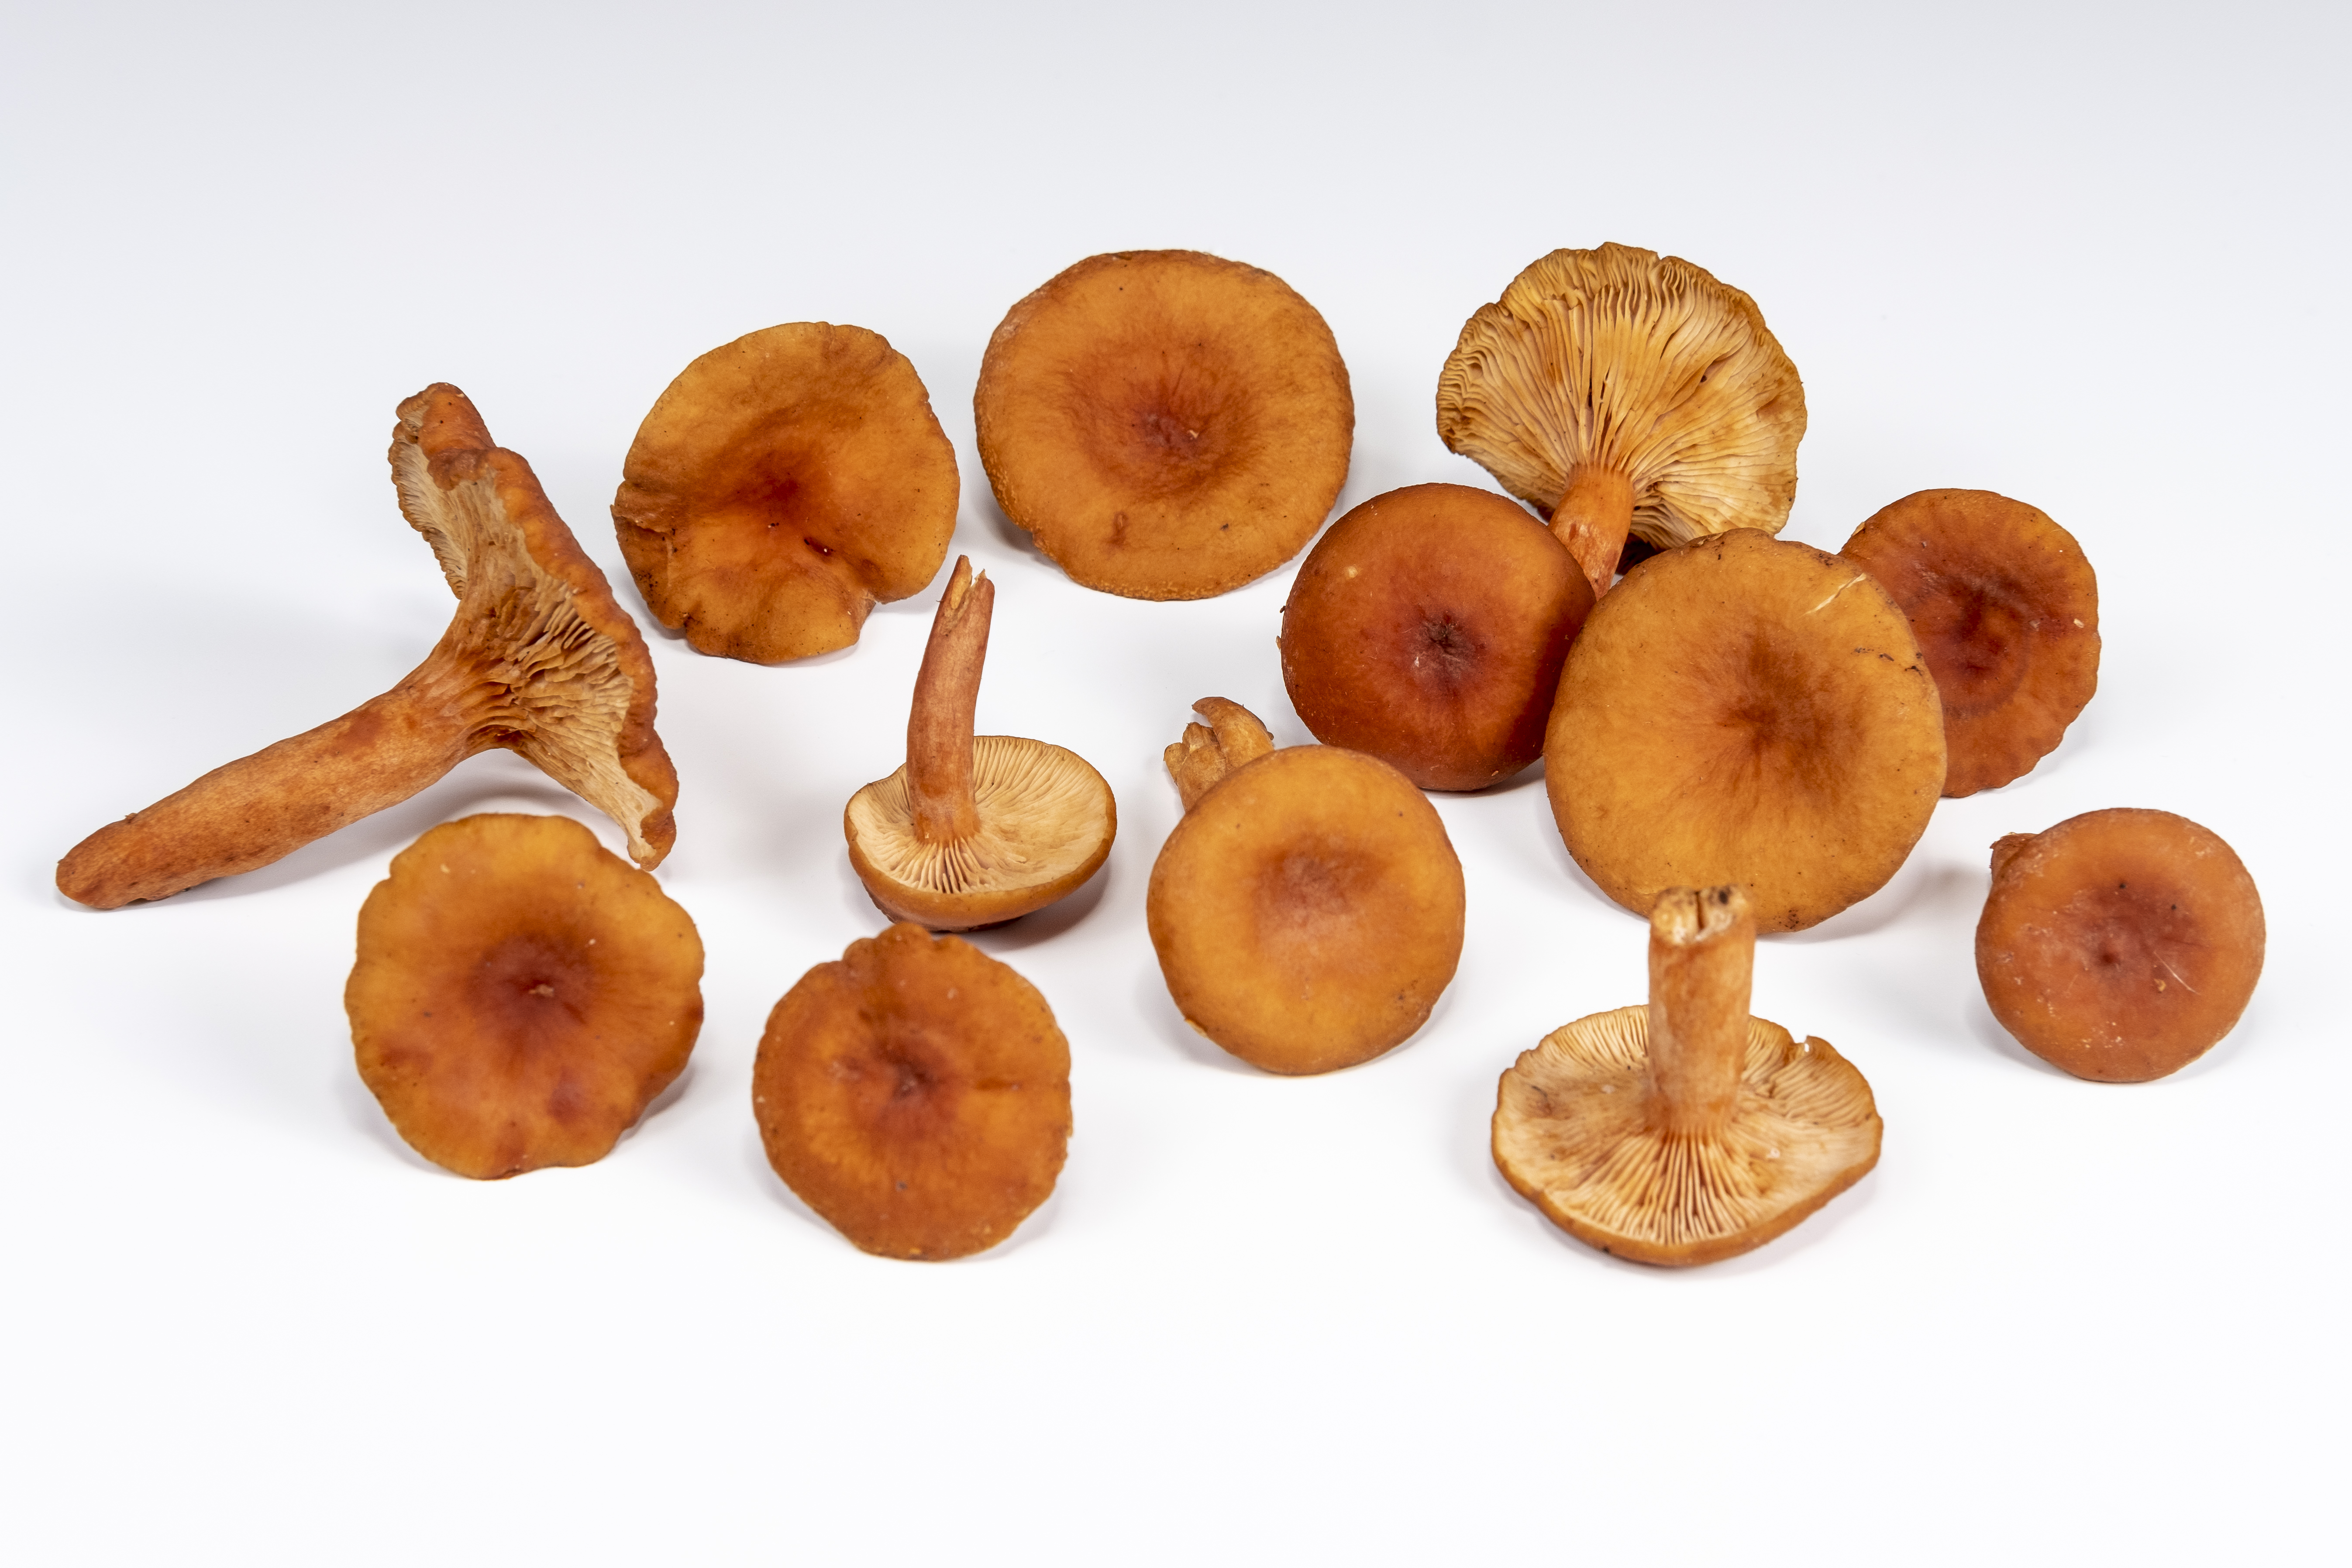 Ingredient Of The Day: Candy Cap Mushroom